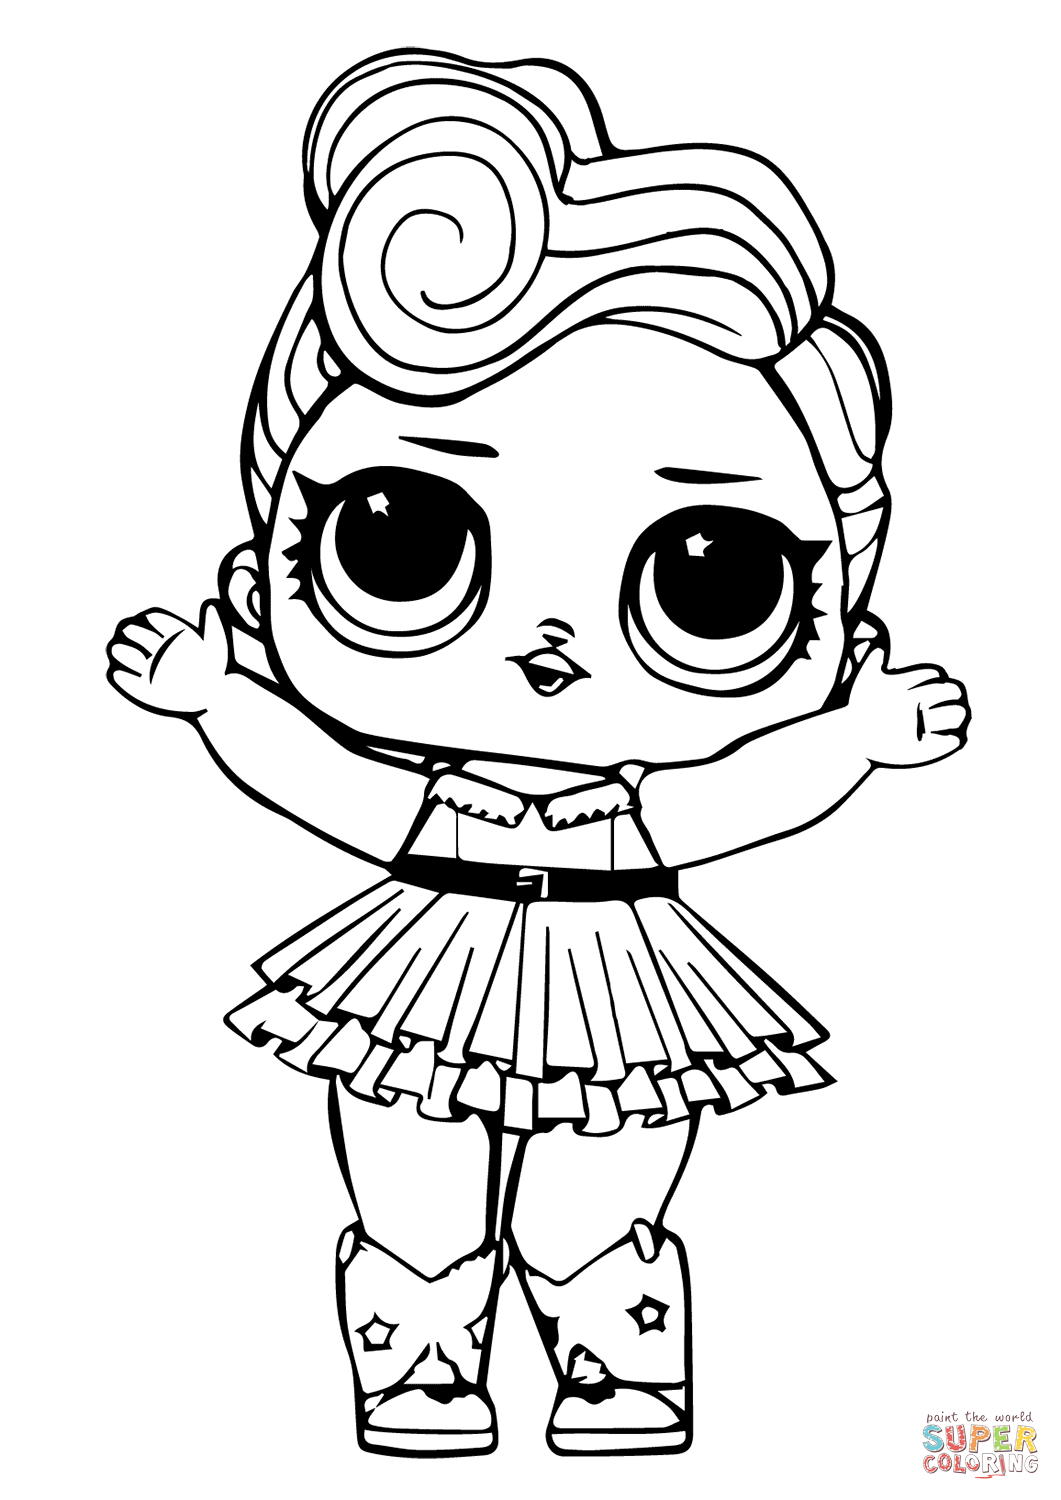 Printable Coloring Pages For Girls Lol